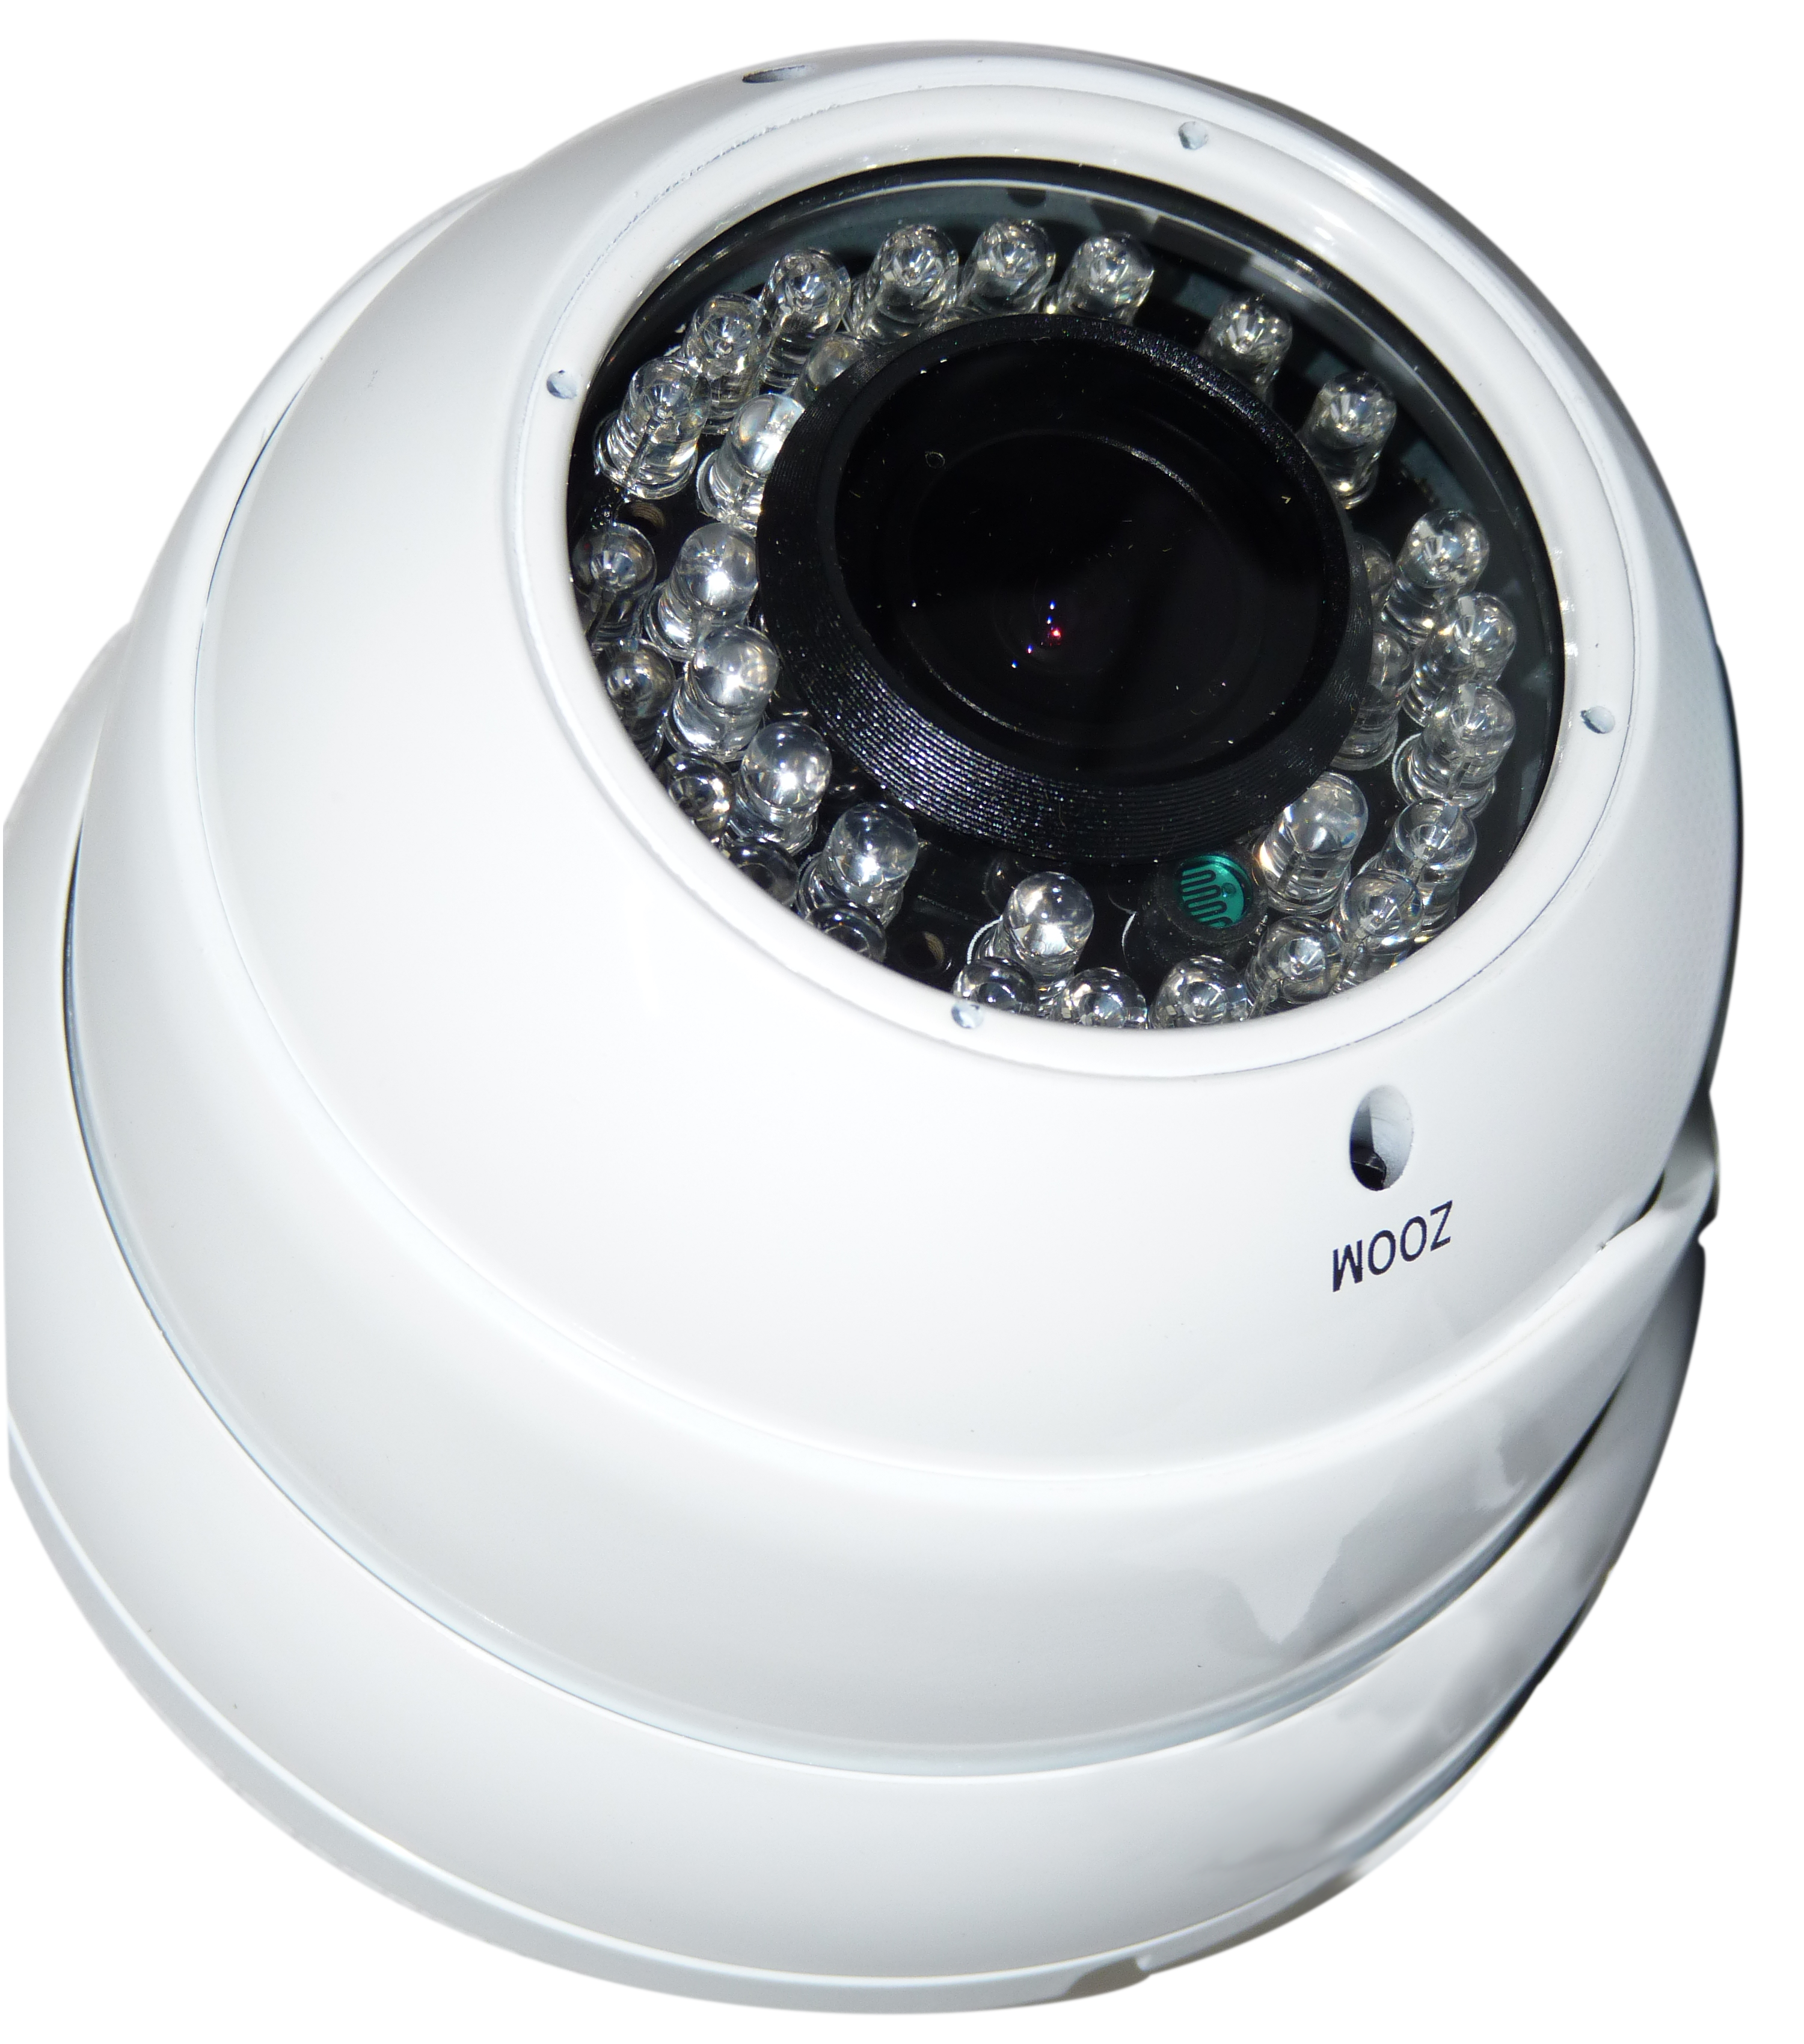 DBS 760W - 700TVL CCTV Dome Security Camera - 1/3'' Sony Super HAD CCD II